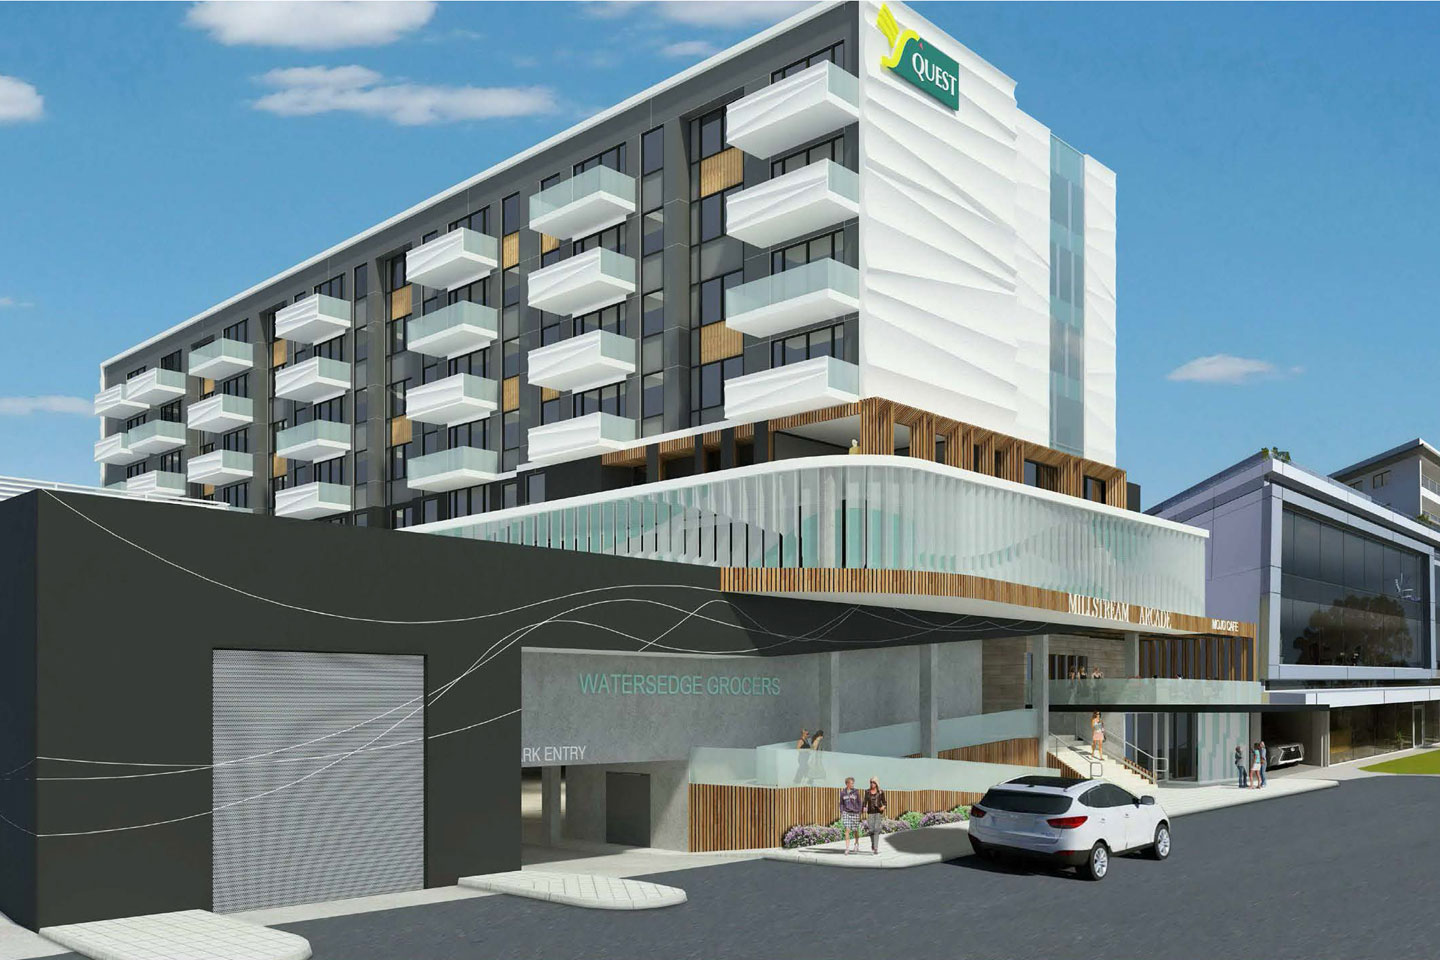 Quest hotel approved for South Perth | Business News